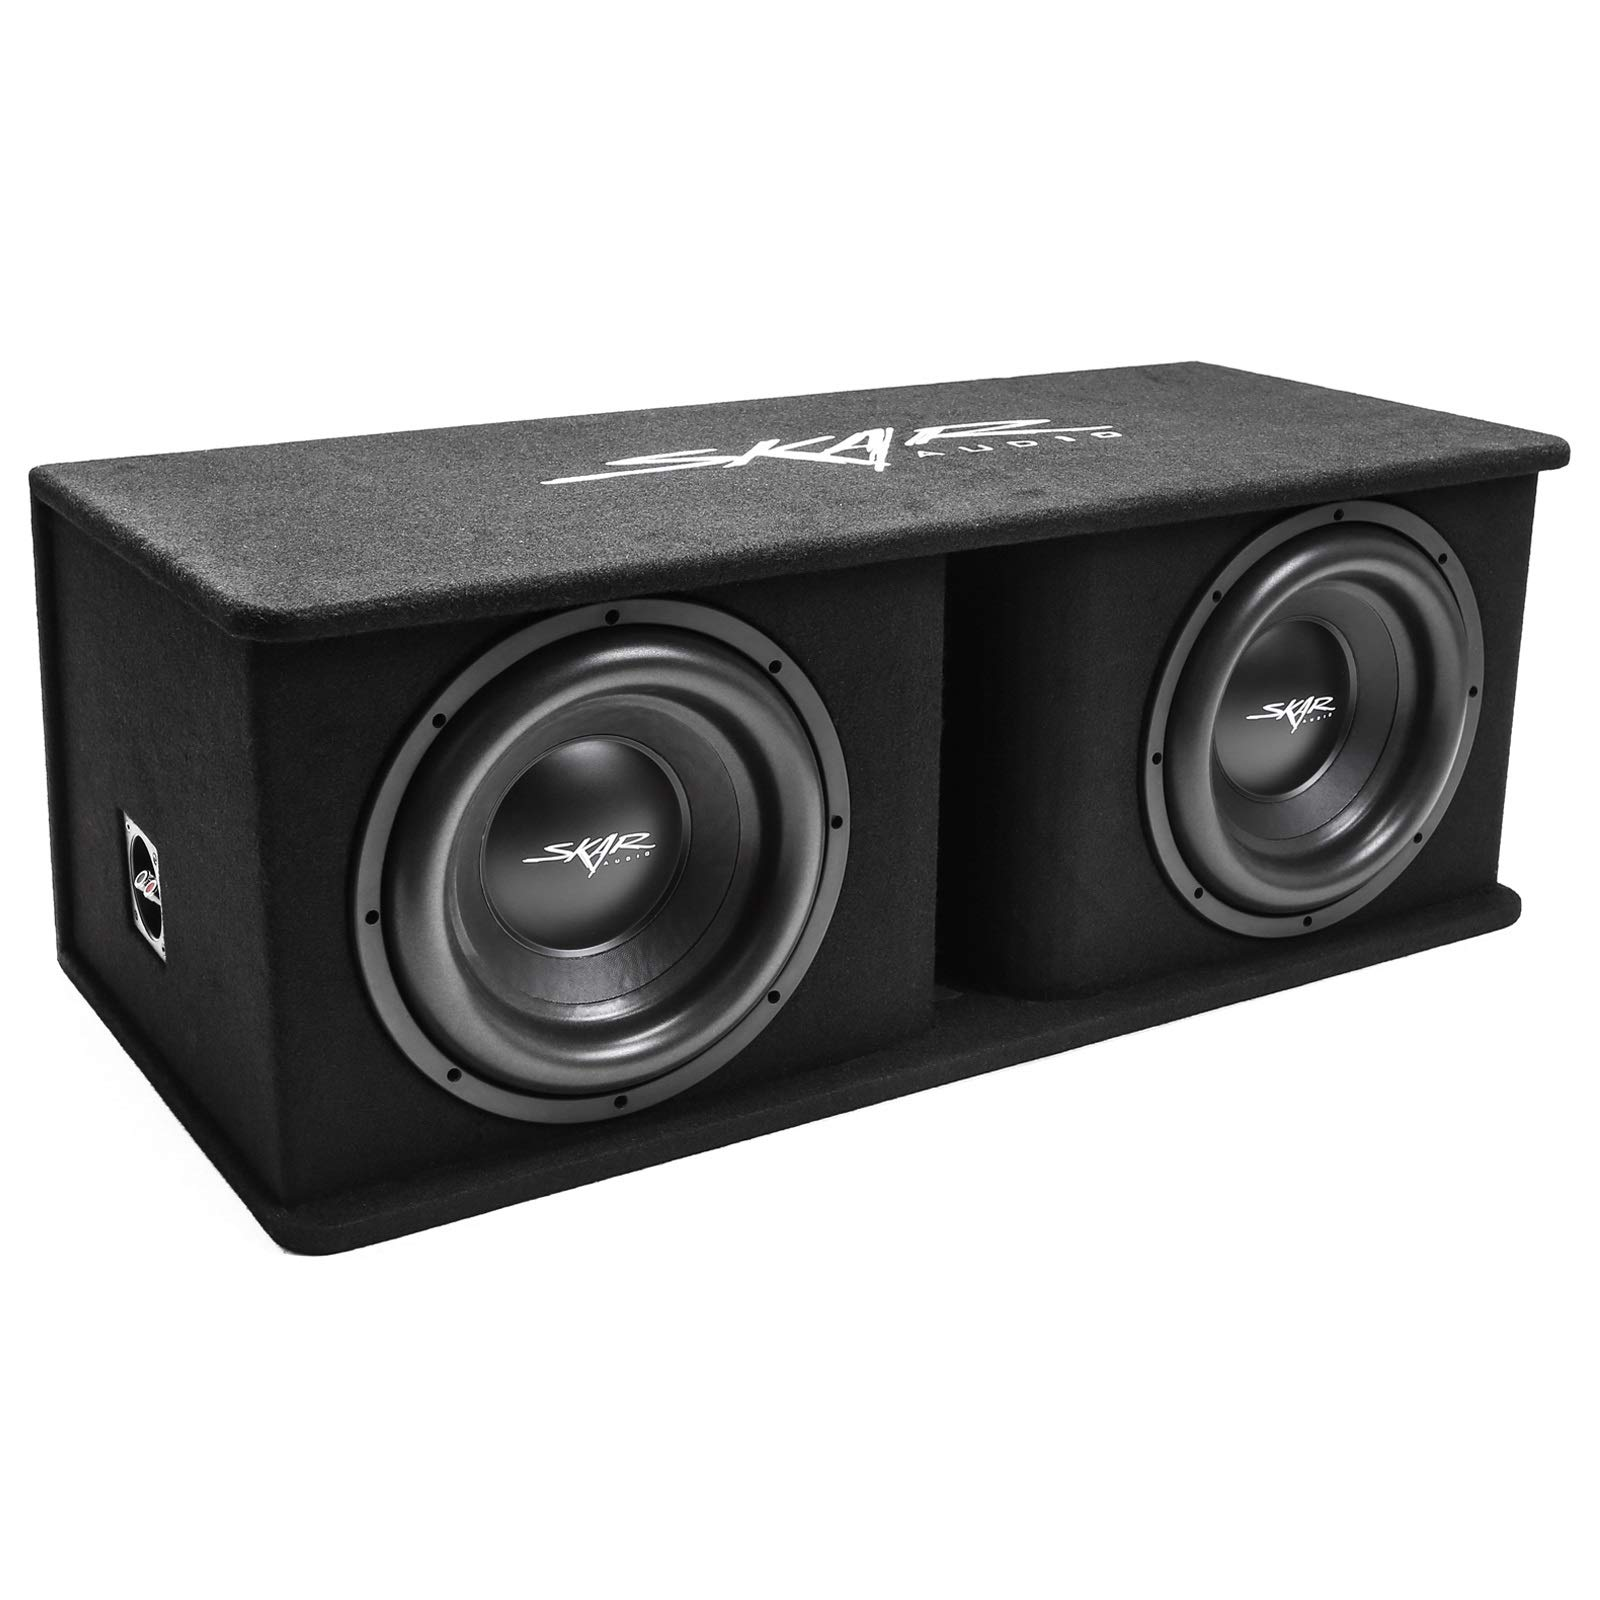 Skar Audio Dual 12'' 2400W Loaded SDR Series Vented Subwoofer Enclosure | SDR-2X12D4 by Skar Audio